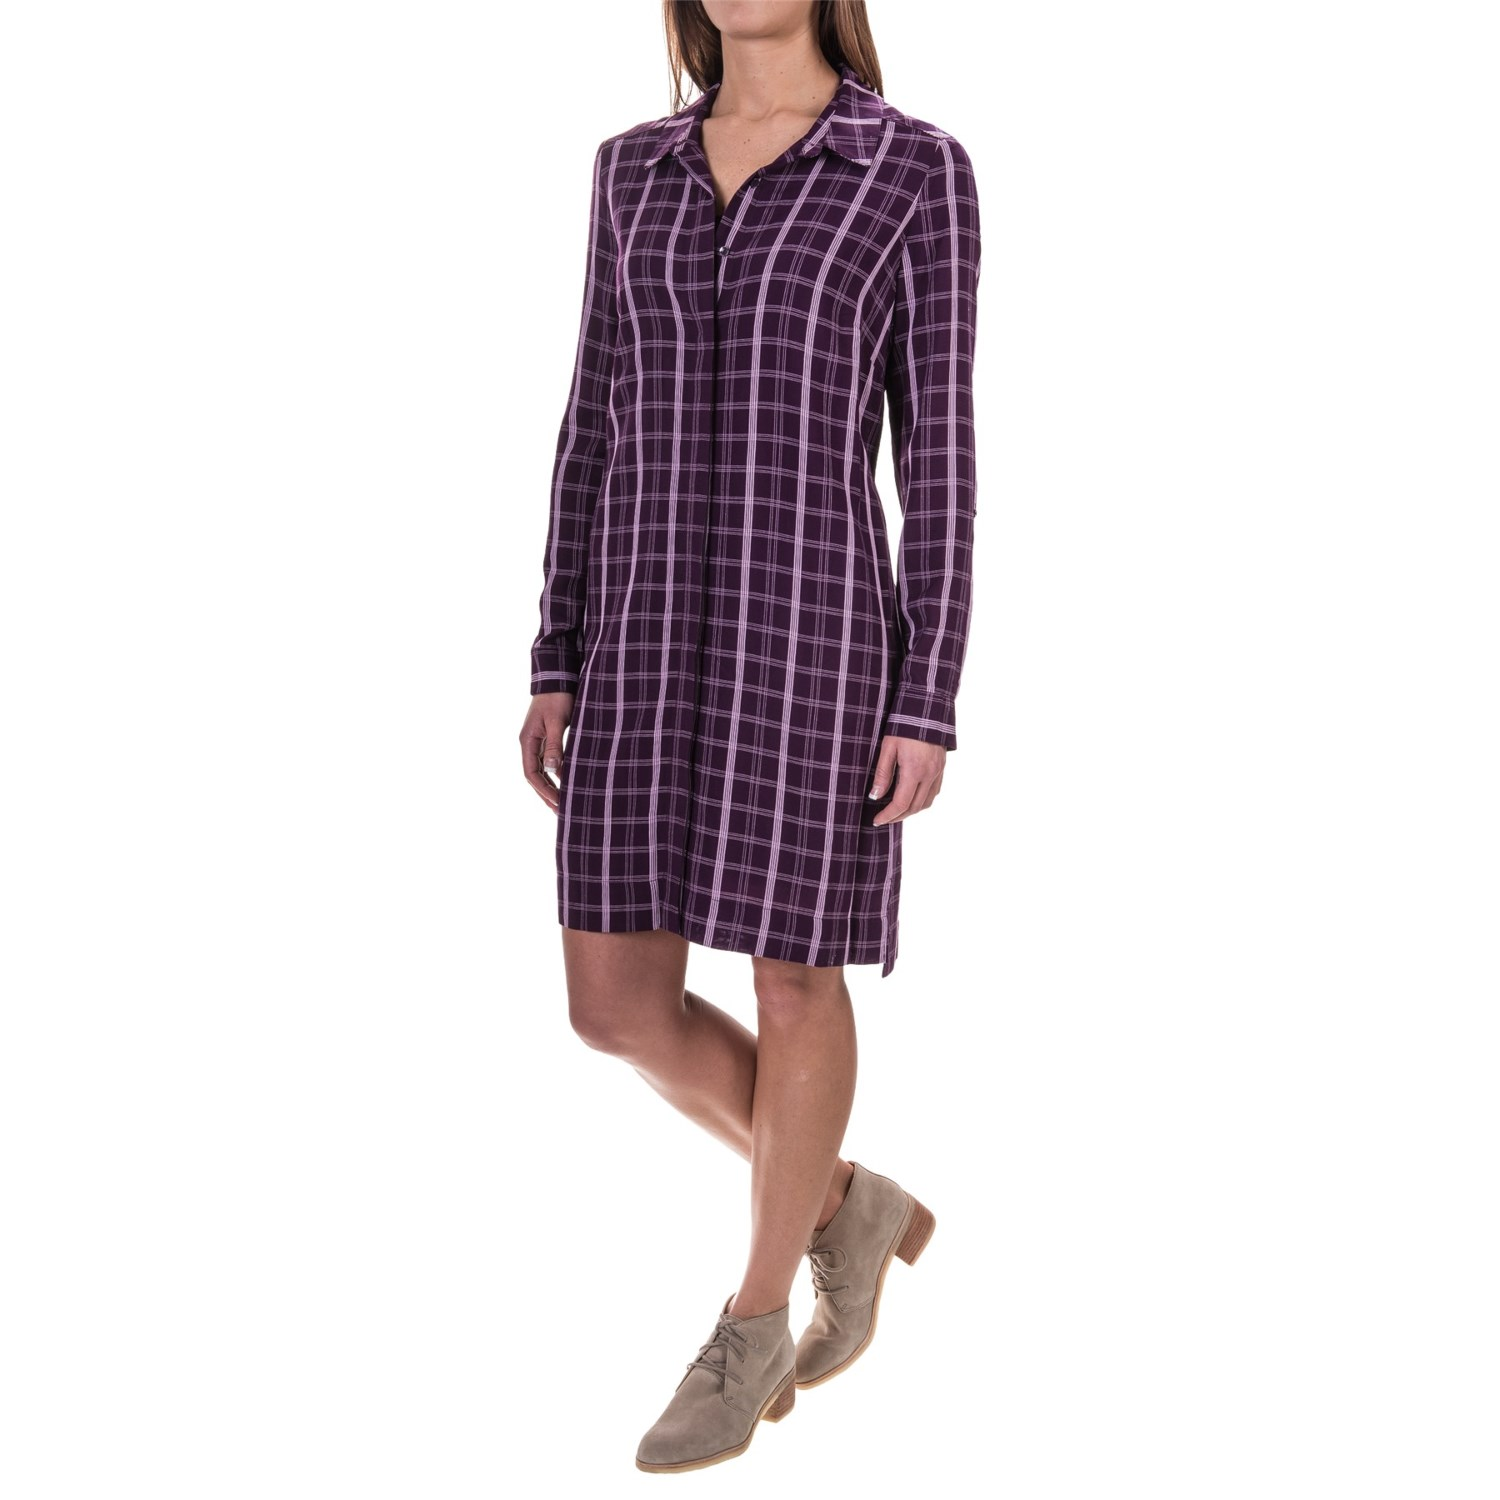 Original Casual Shirt Dress For Women  Fashion Collection Fashion Style